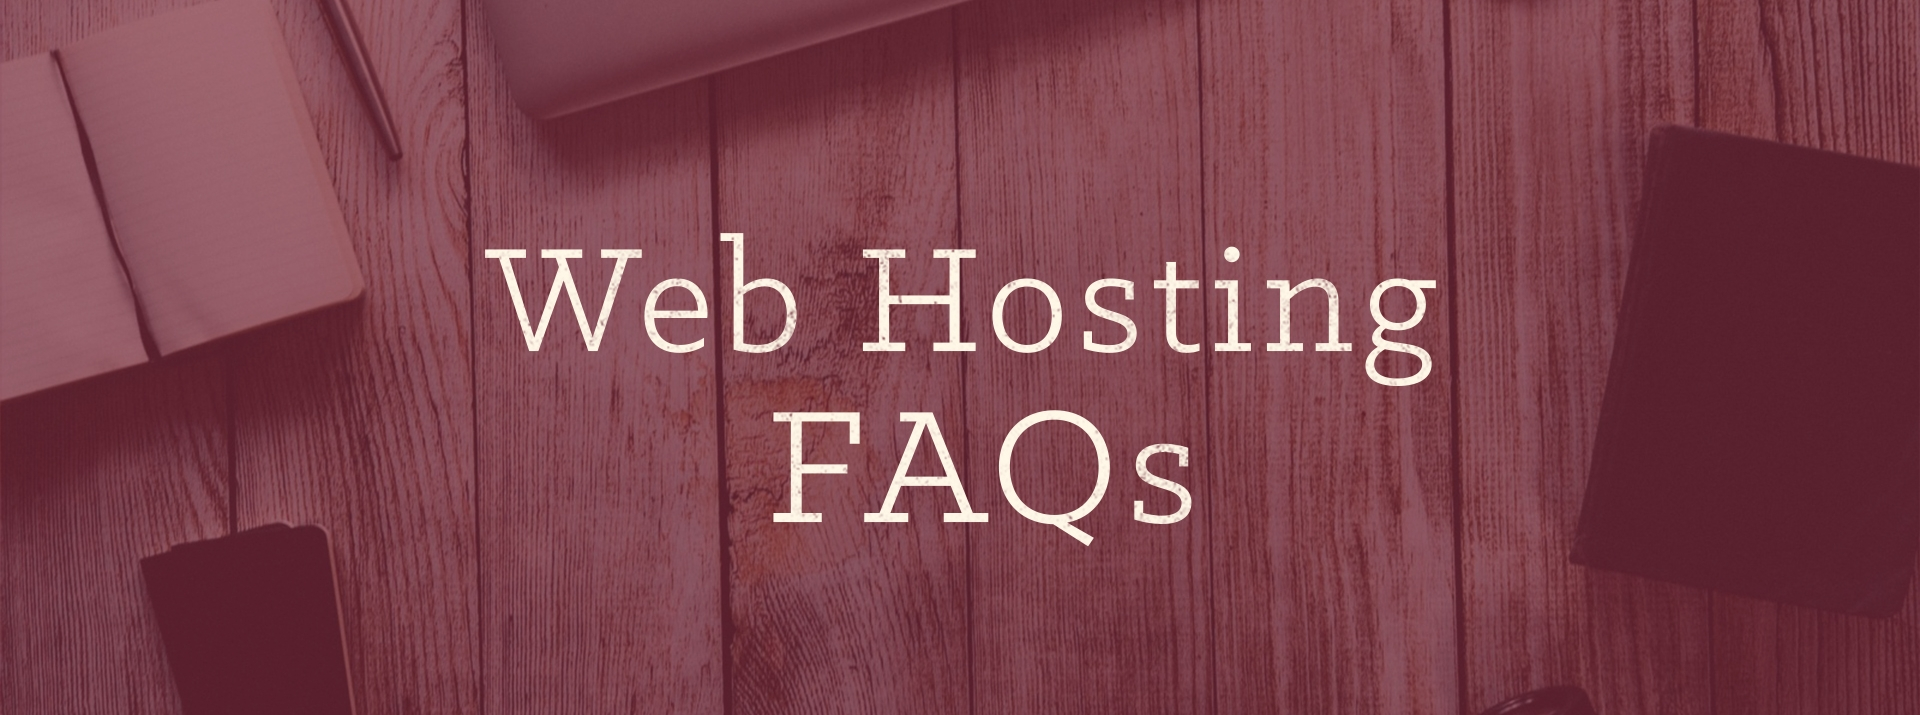 web-hosting-faqs